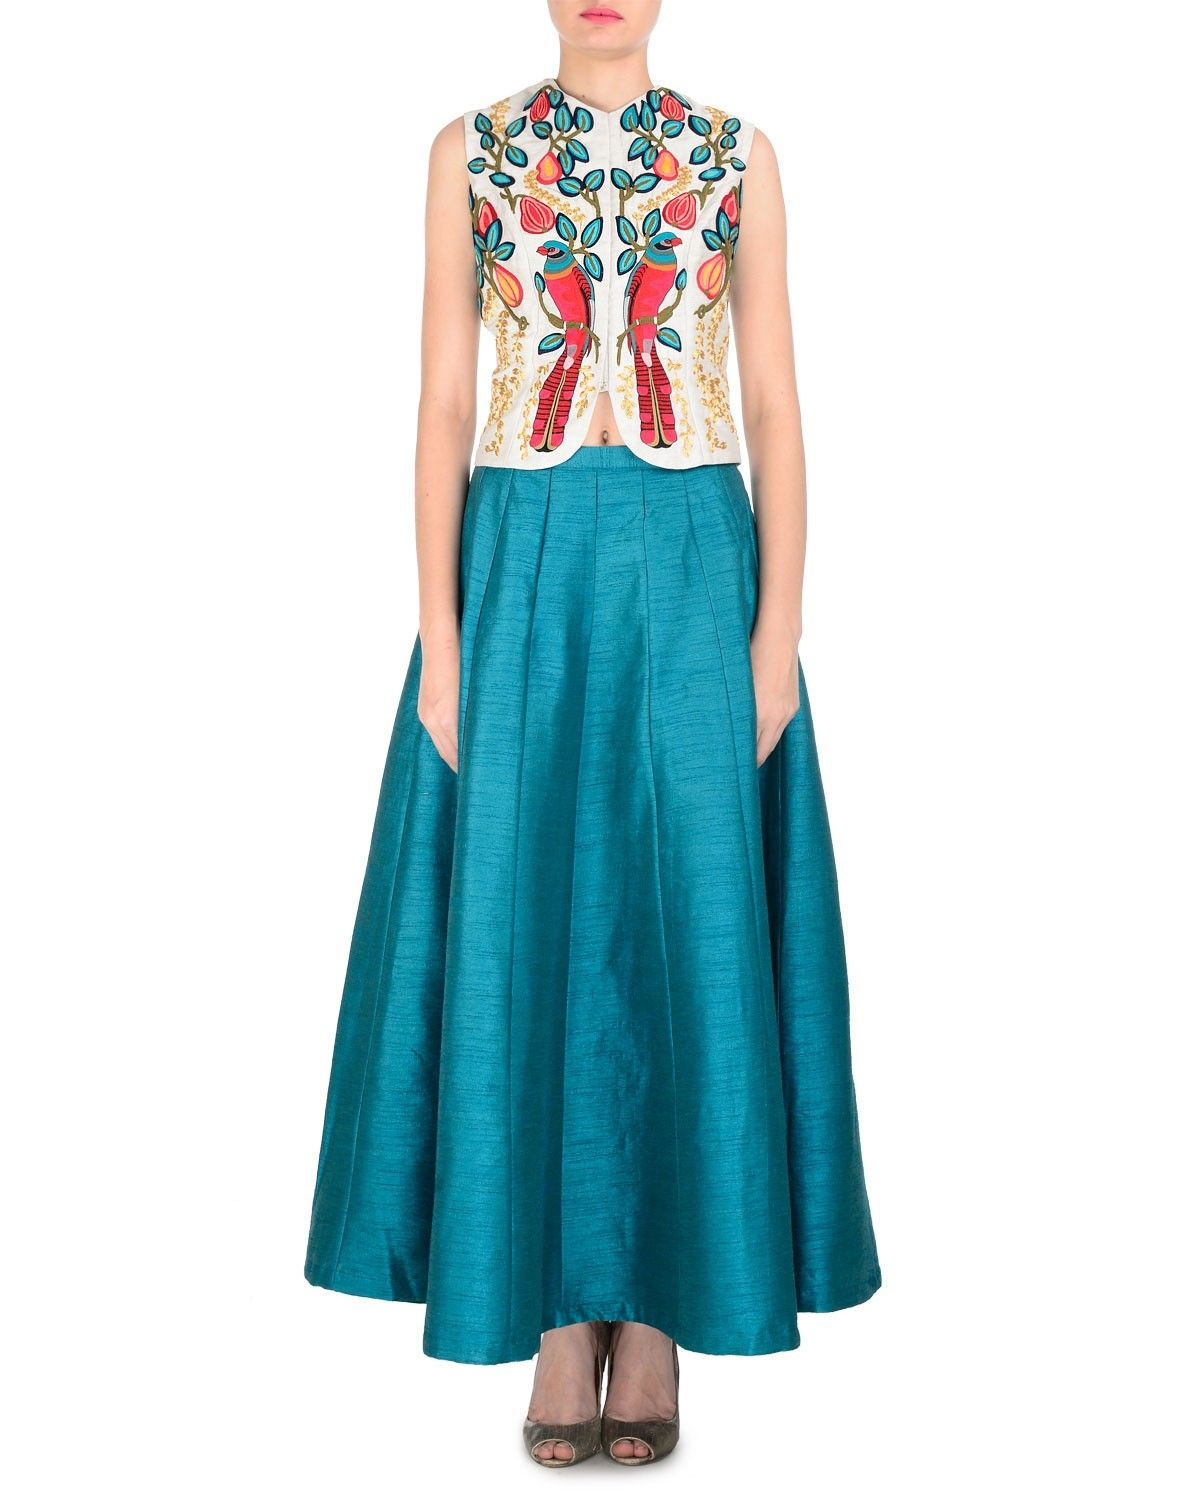 Ivory Bird Embroidered Waistcoat With Plain Teal Skirt